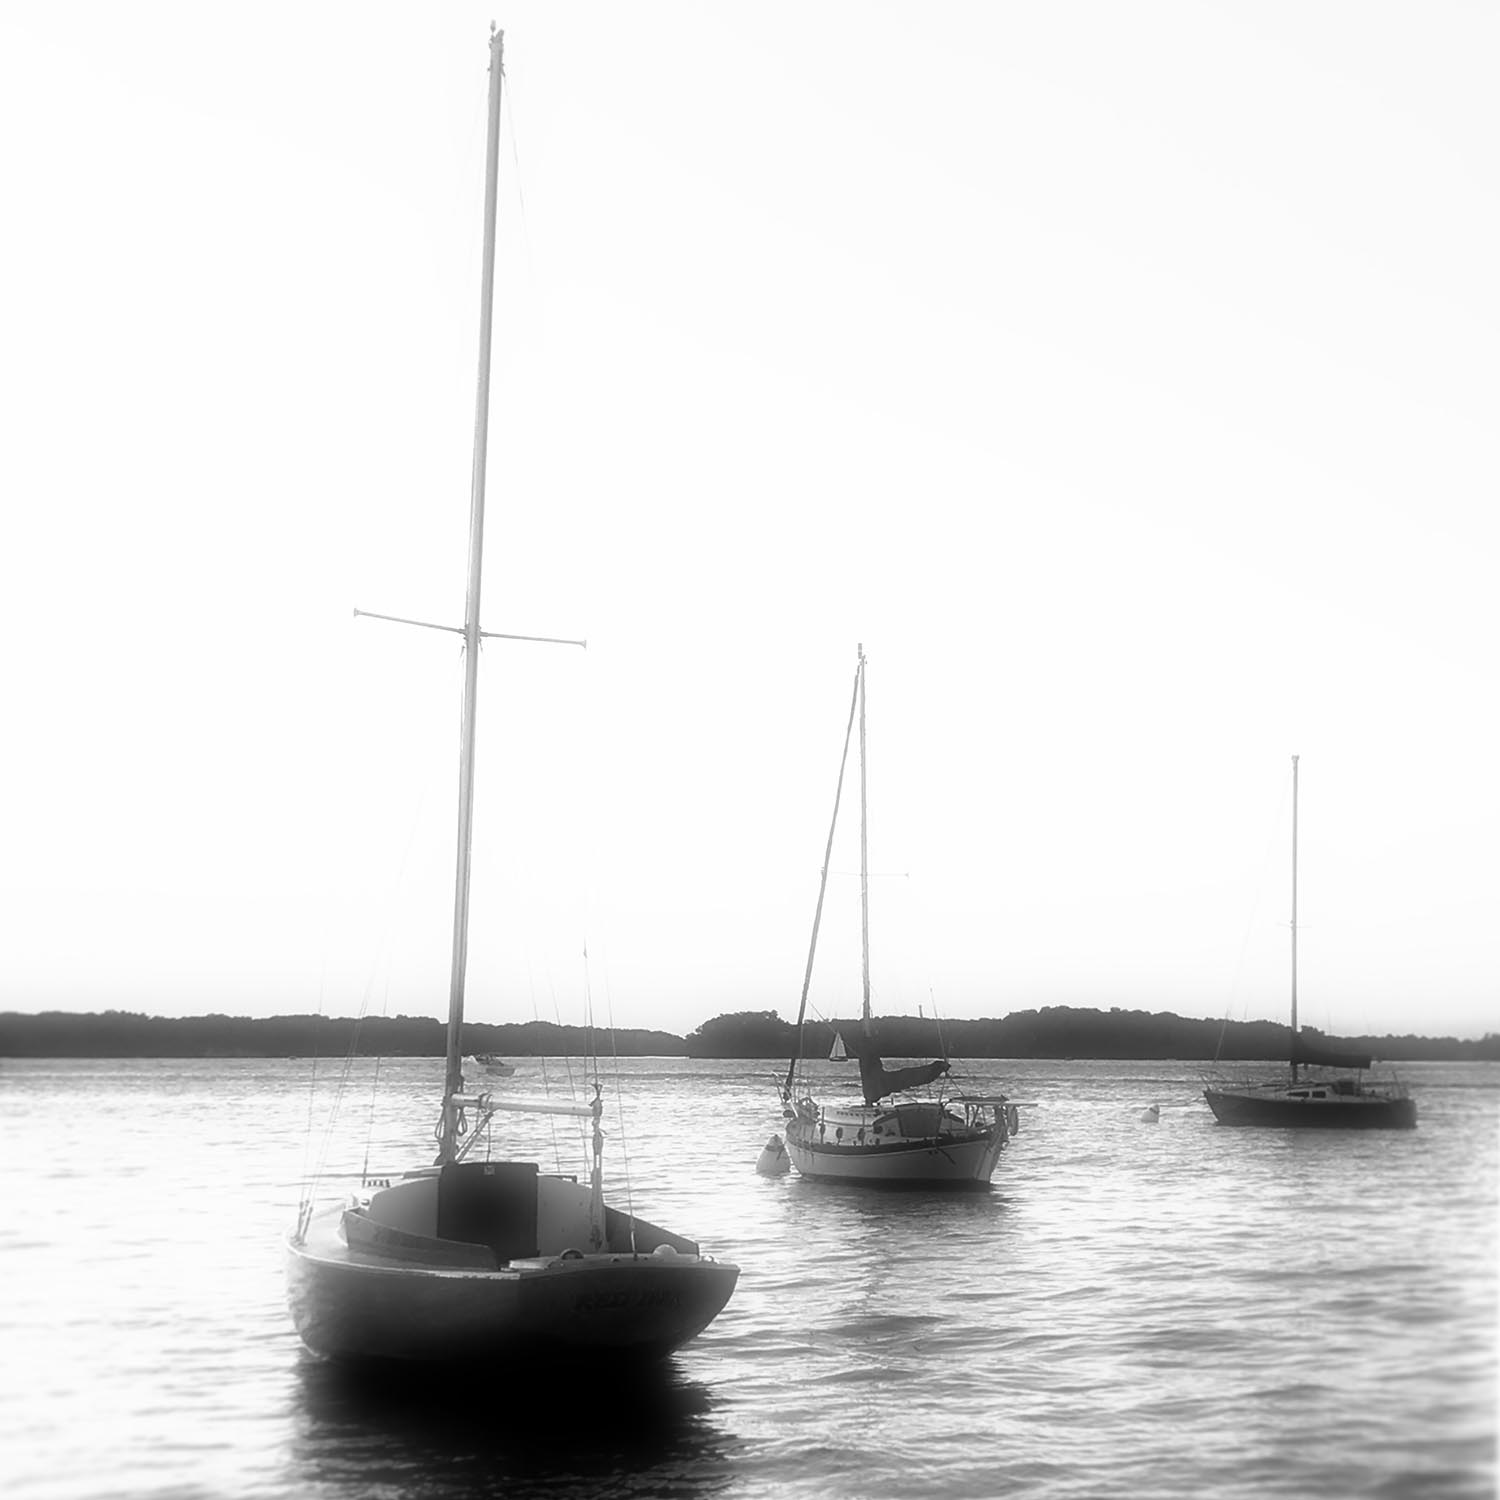 3 sailboats excel bay.jpg